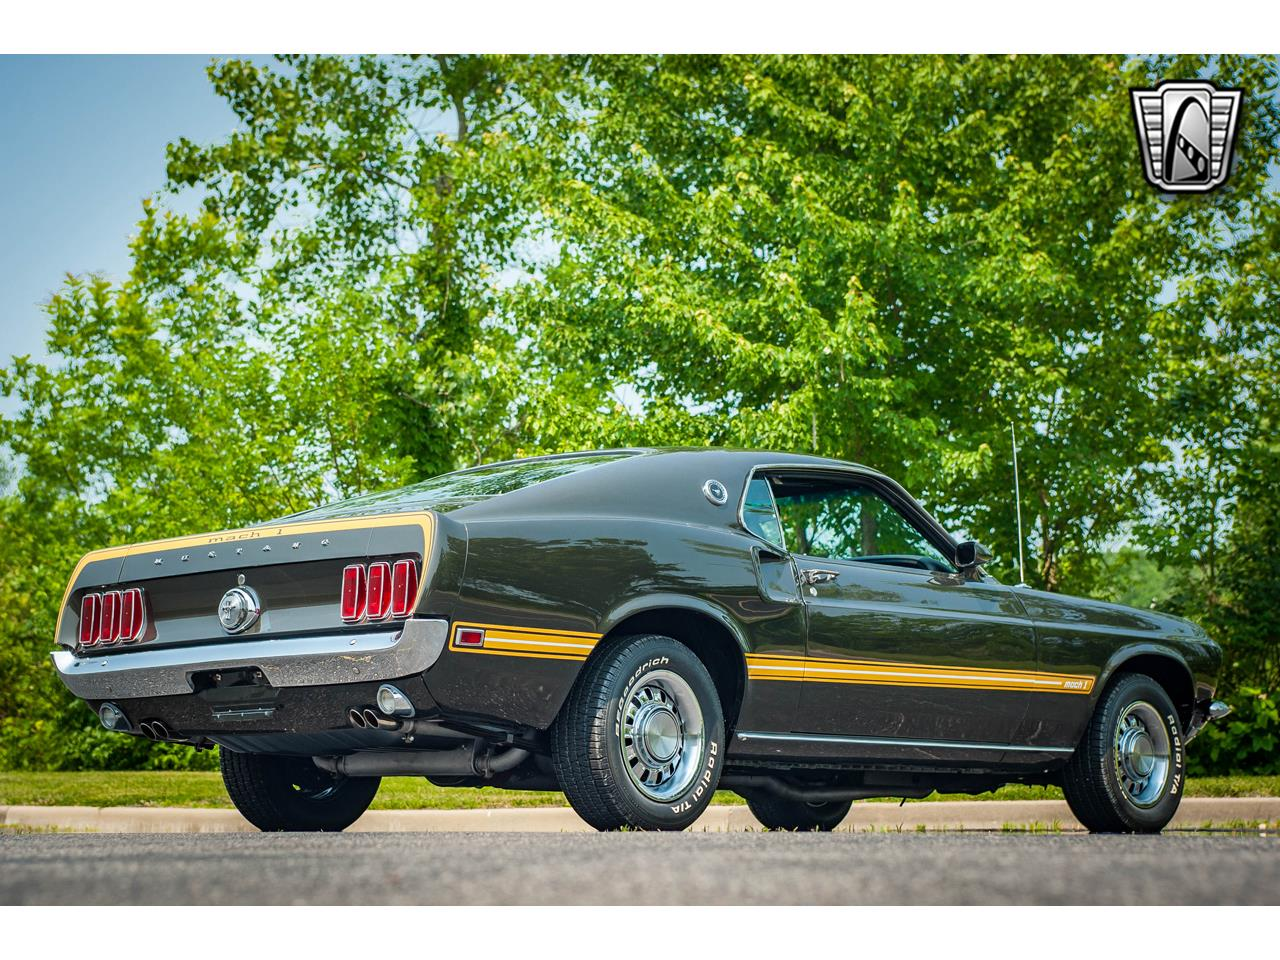 Large Picture of '69 Mustang - $97,500.00 Offered by Gateway Classic Cars - St. Louis - QBA2